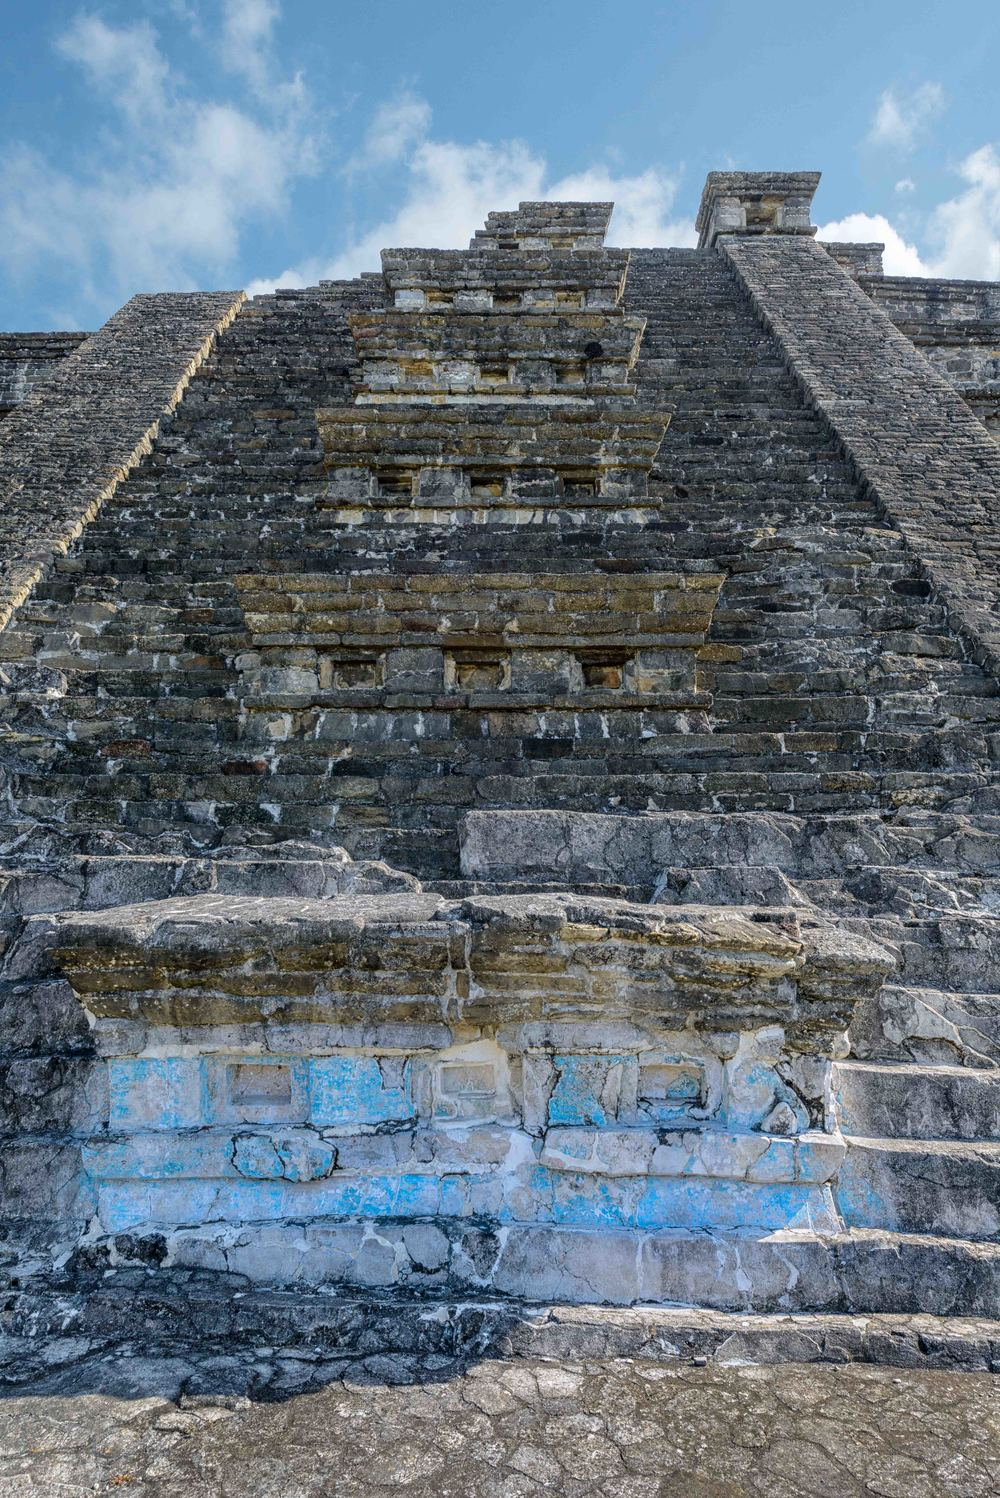 The   Blue Temple   has some features that set it apart from other pyramids at the site. Except for six benches on the staircase and at the top of the balustrades, probably later additions, there are no niches.